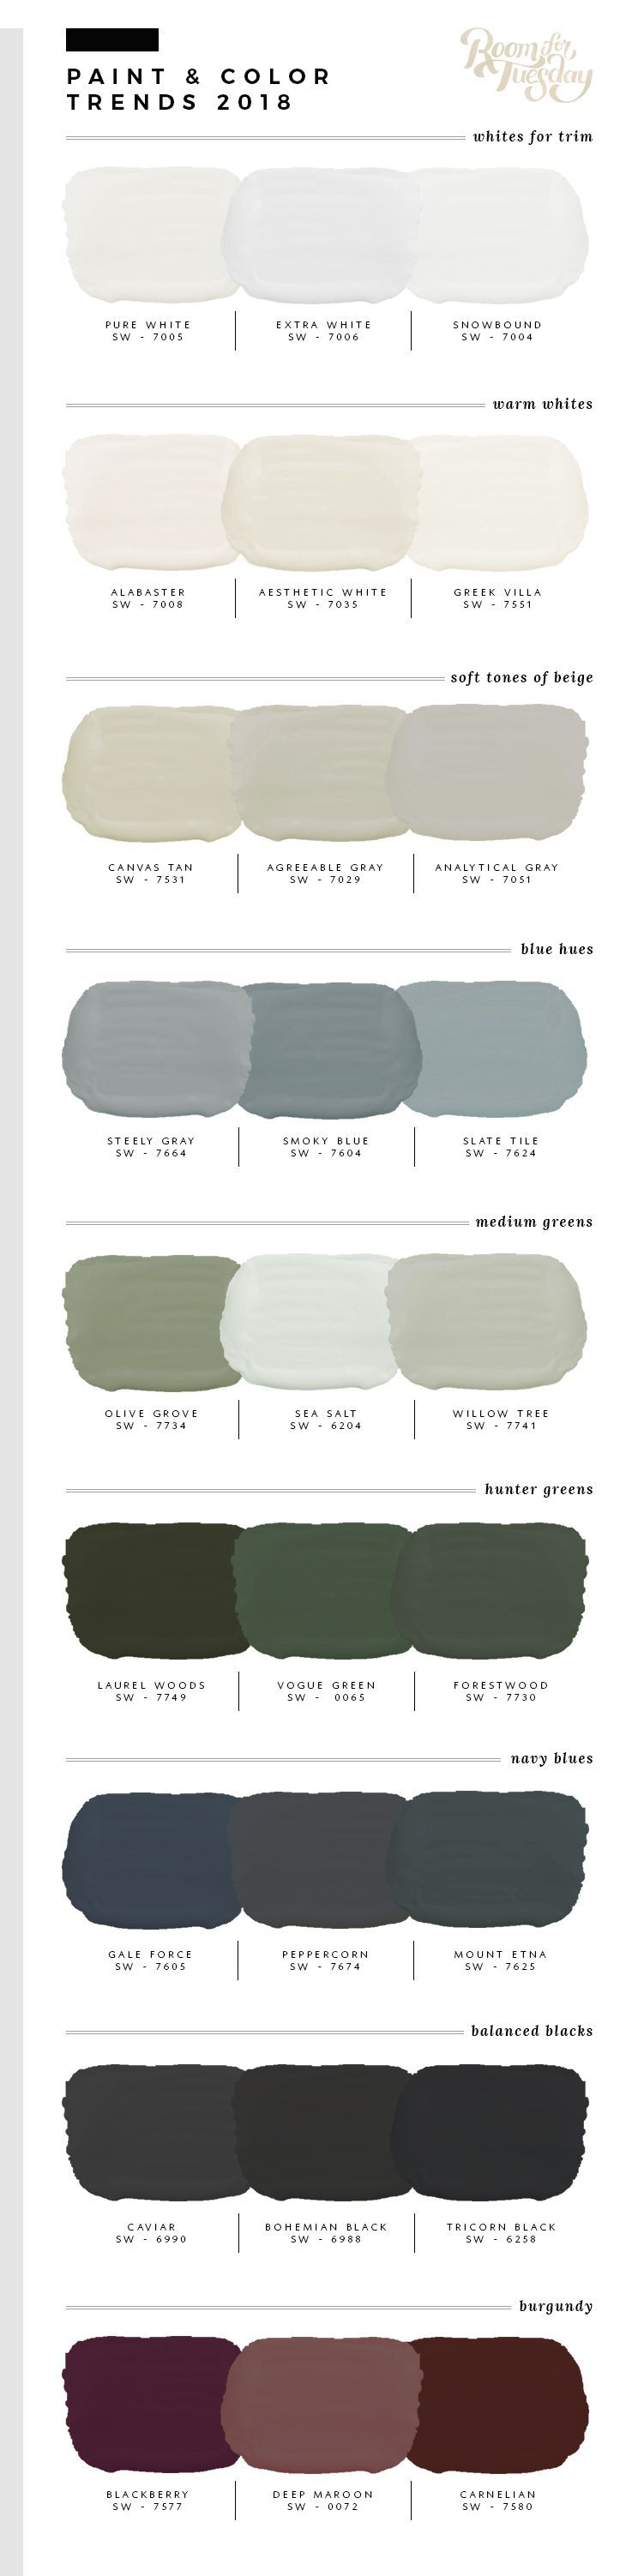 Predicted Paint Colors for 2018 - handsome palette